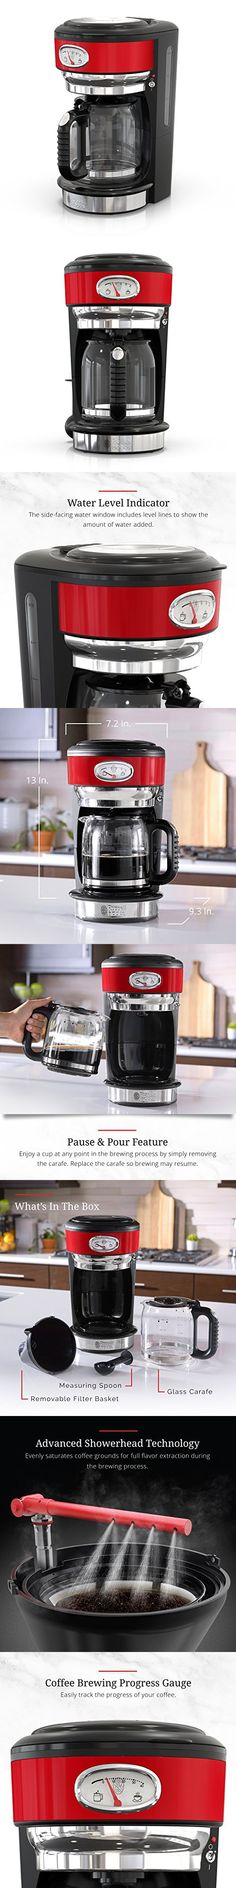 Russell Hobbs Retro Style 8-Cup Coffeemaker, Red & Stainless Steel, CM3100RDR Coffee Machines, Coffeemaker, Hobbs, Retro Style, Retro Fashion, Stainless Steel, Red, Retro Styles, Coffee Pod Machines